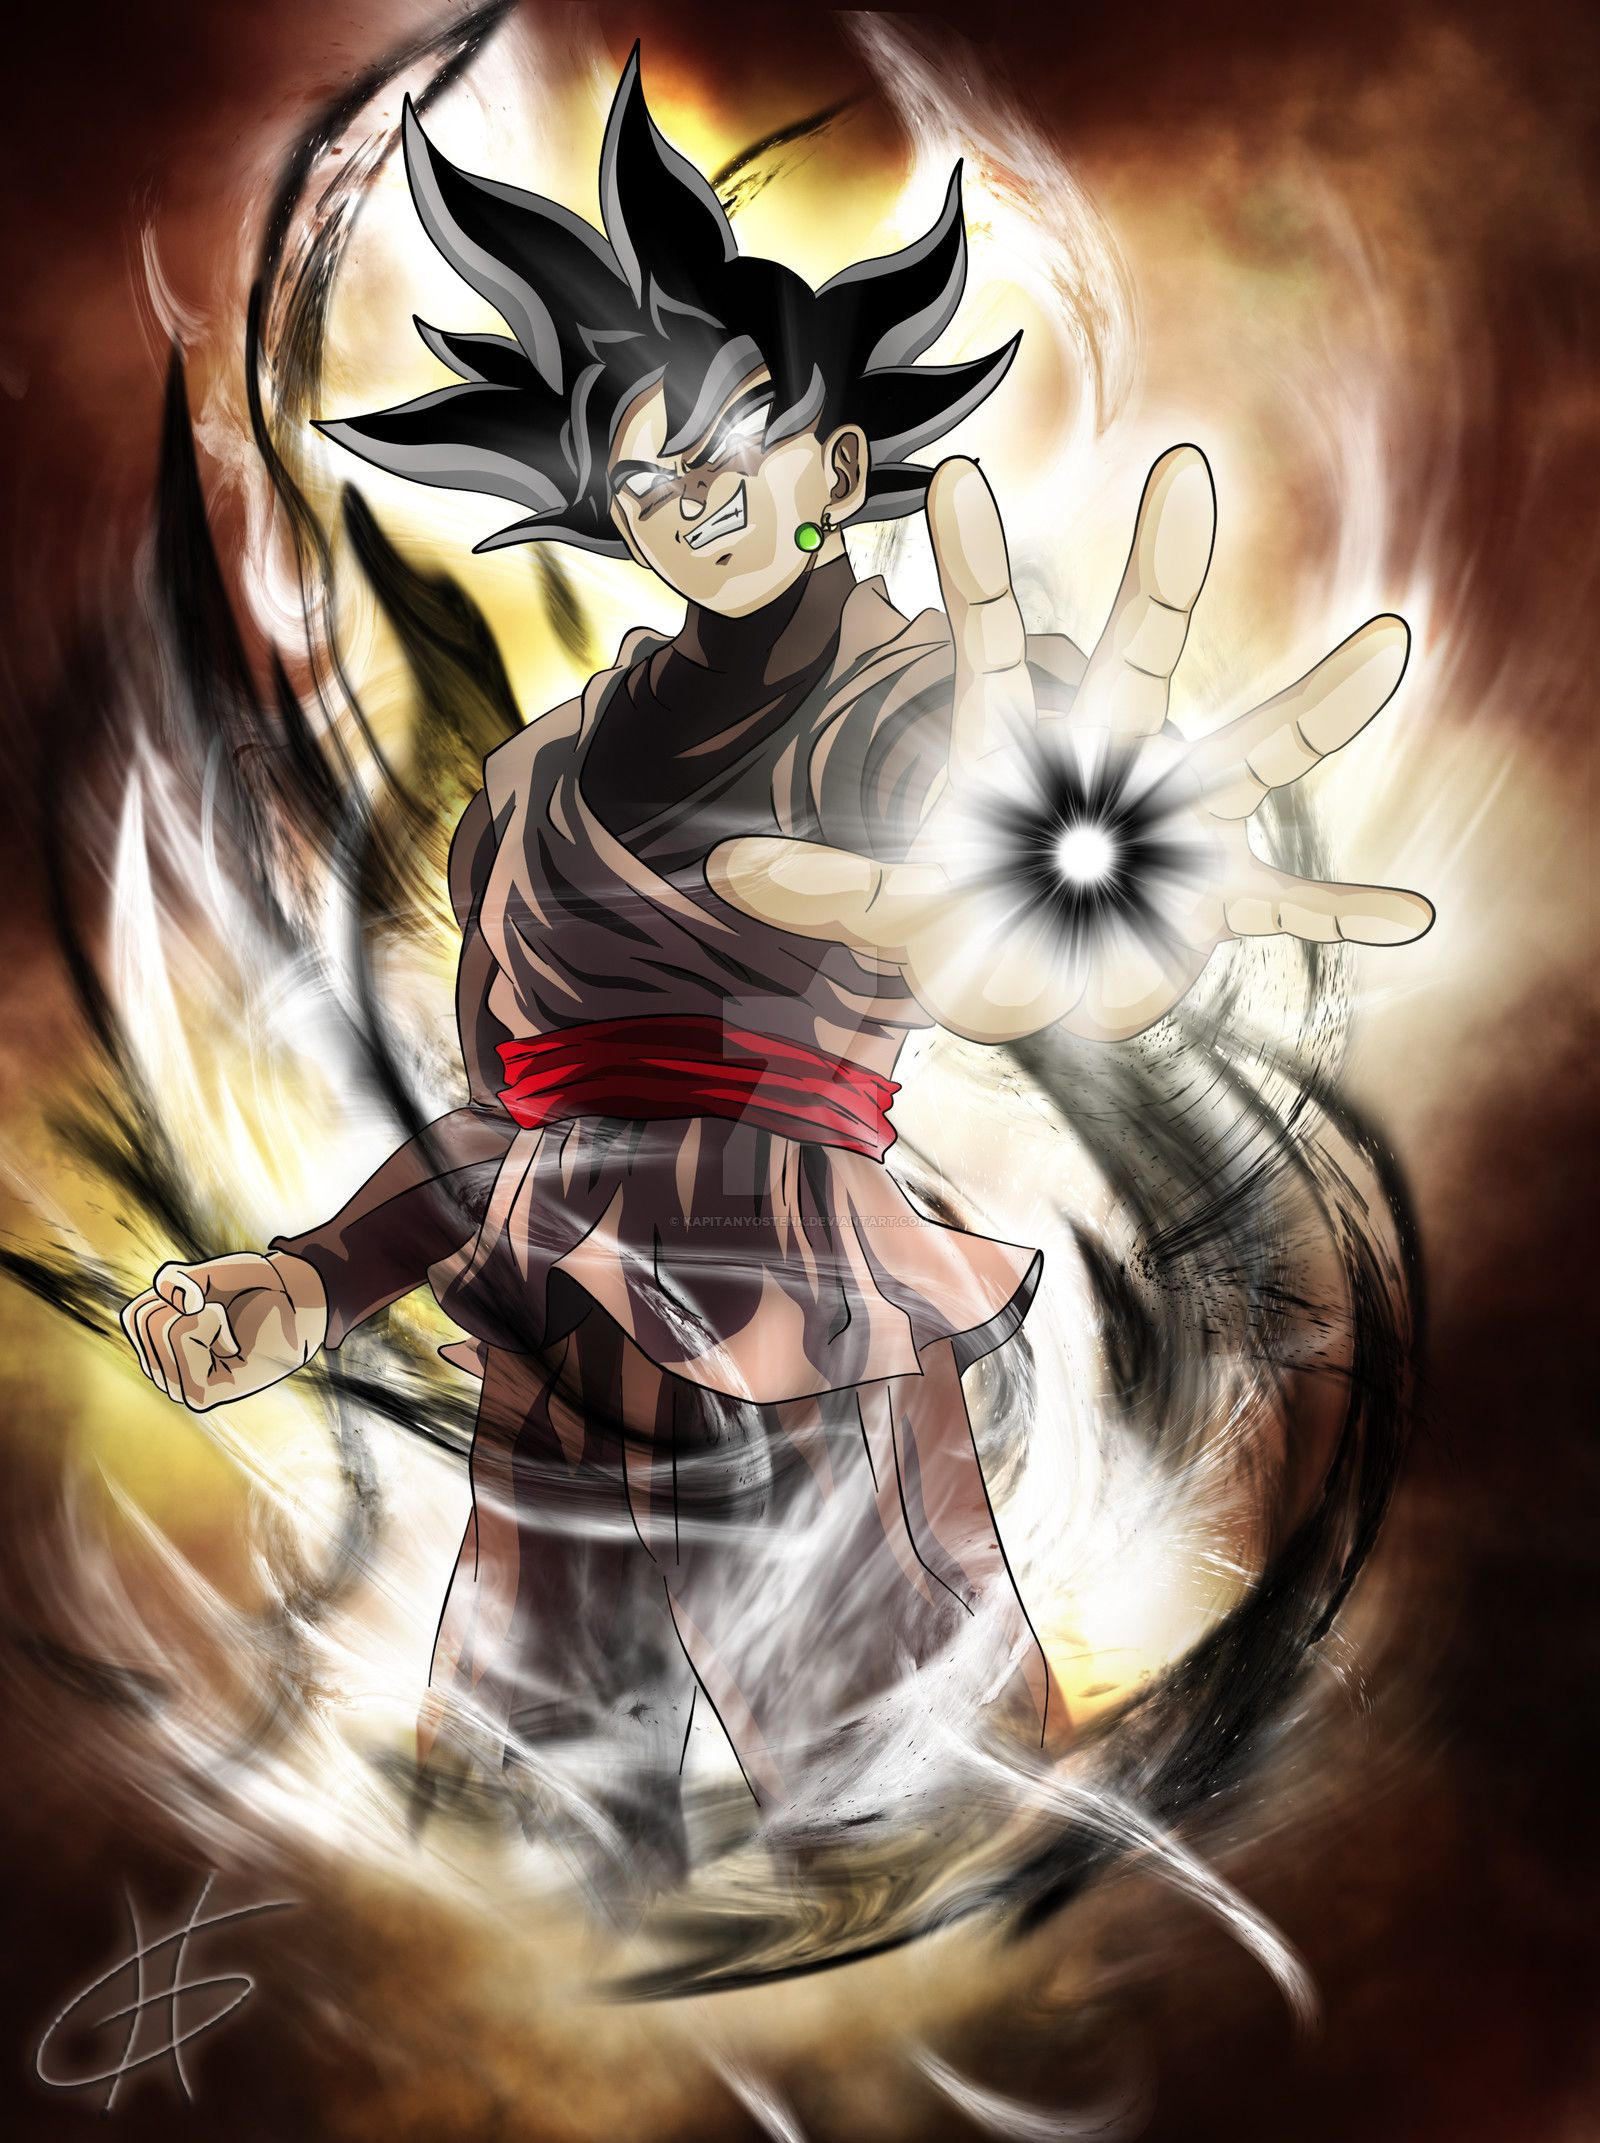 Goku Iphone Wallpapers Top Free Goku Iphone Backgrounds